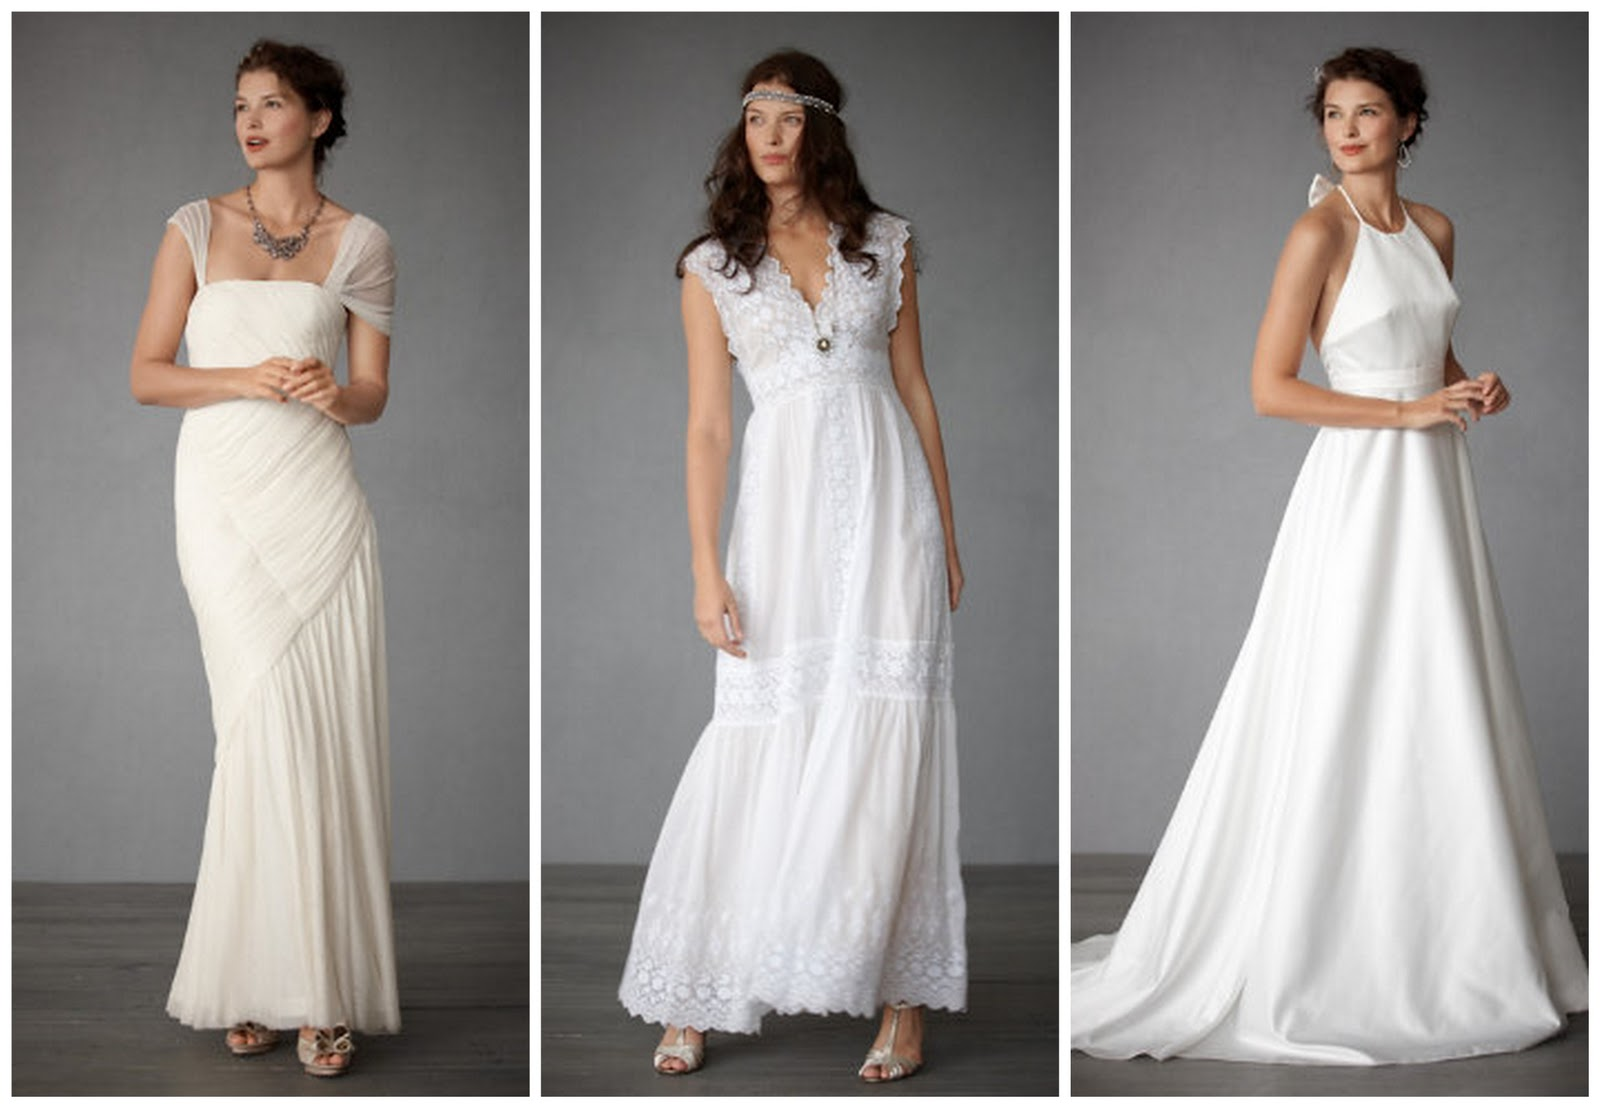 Reasonable Whimsical Wedding Gowns from BHLDN